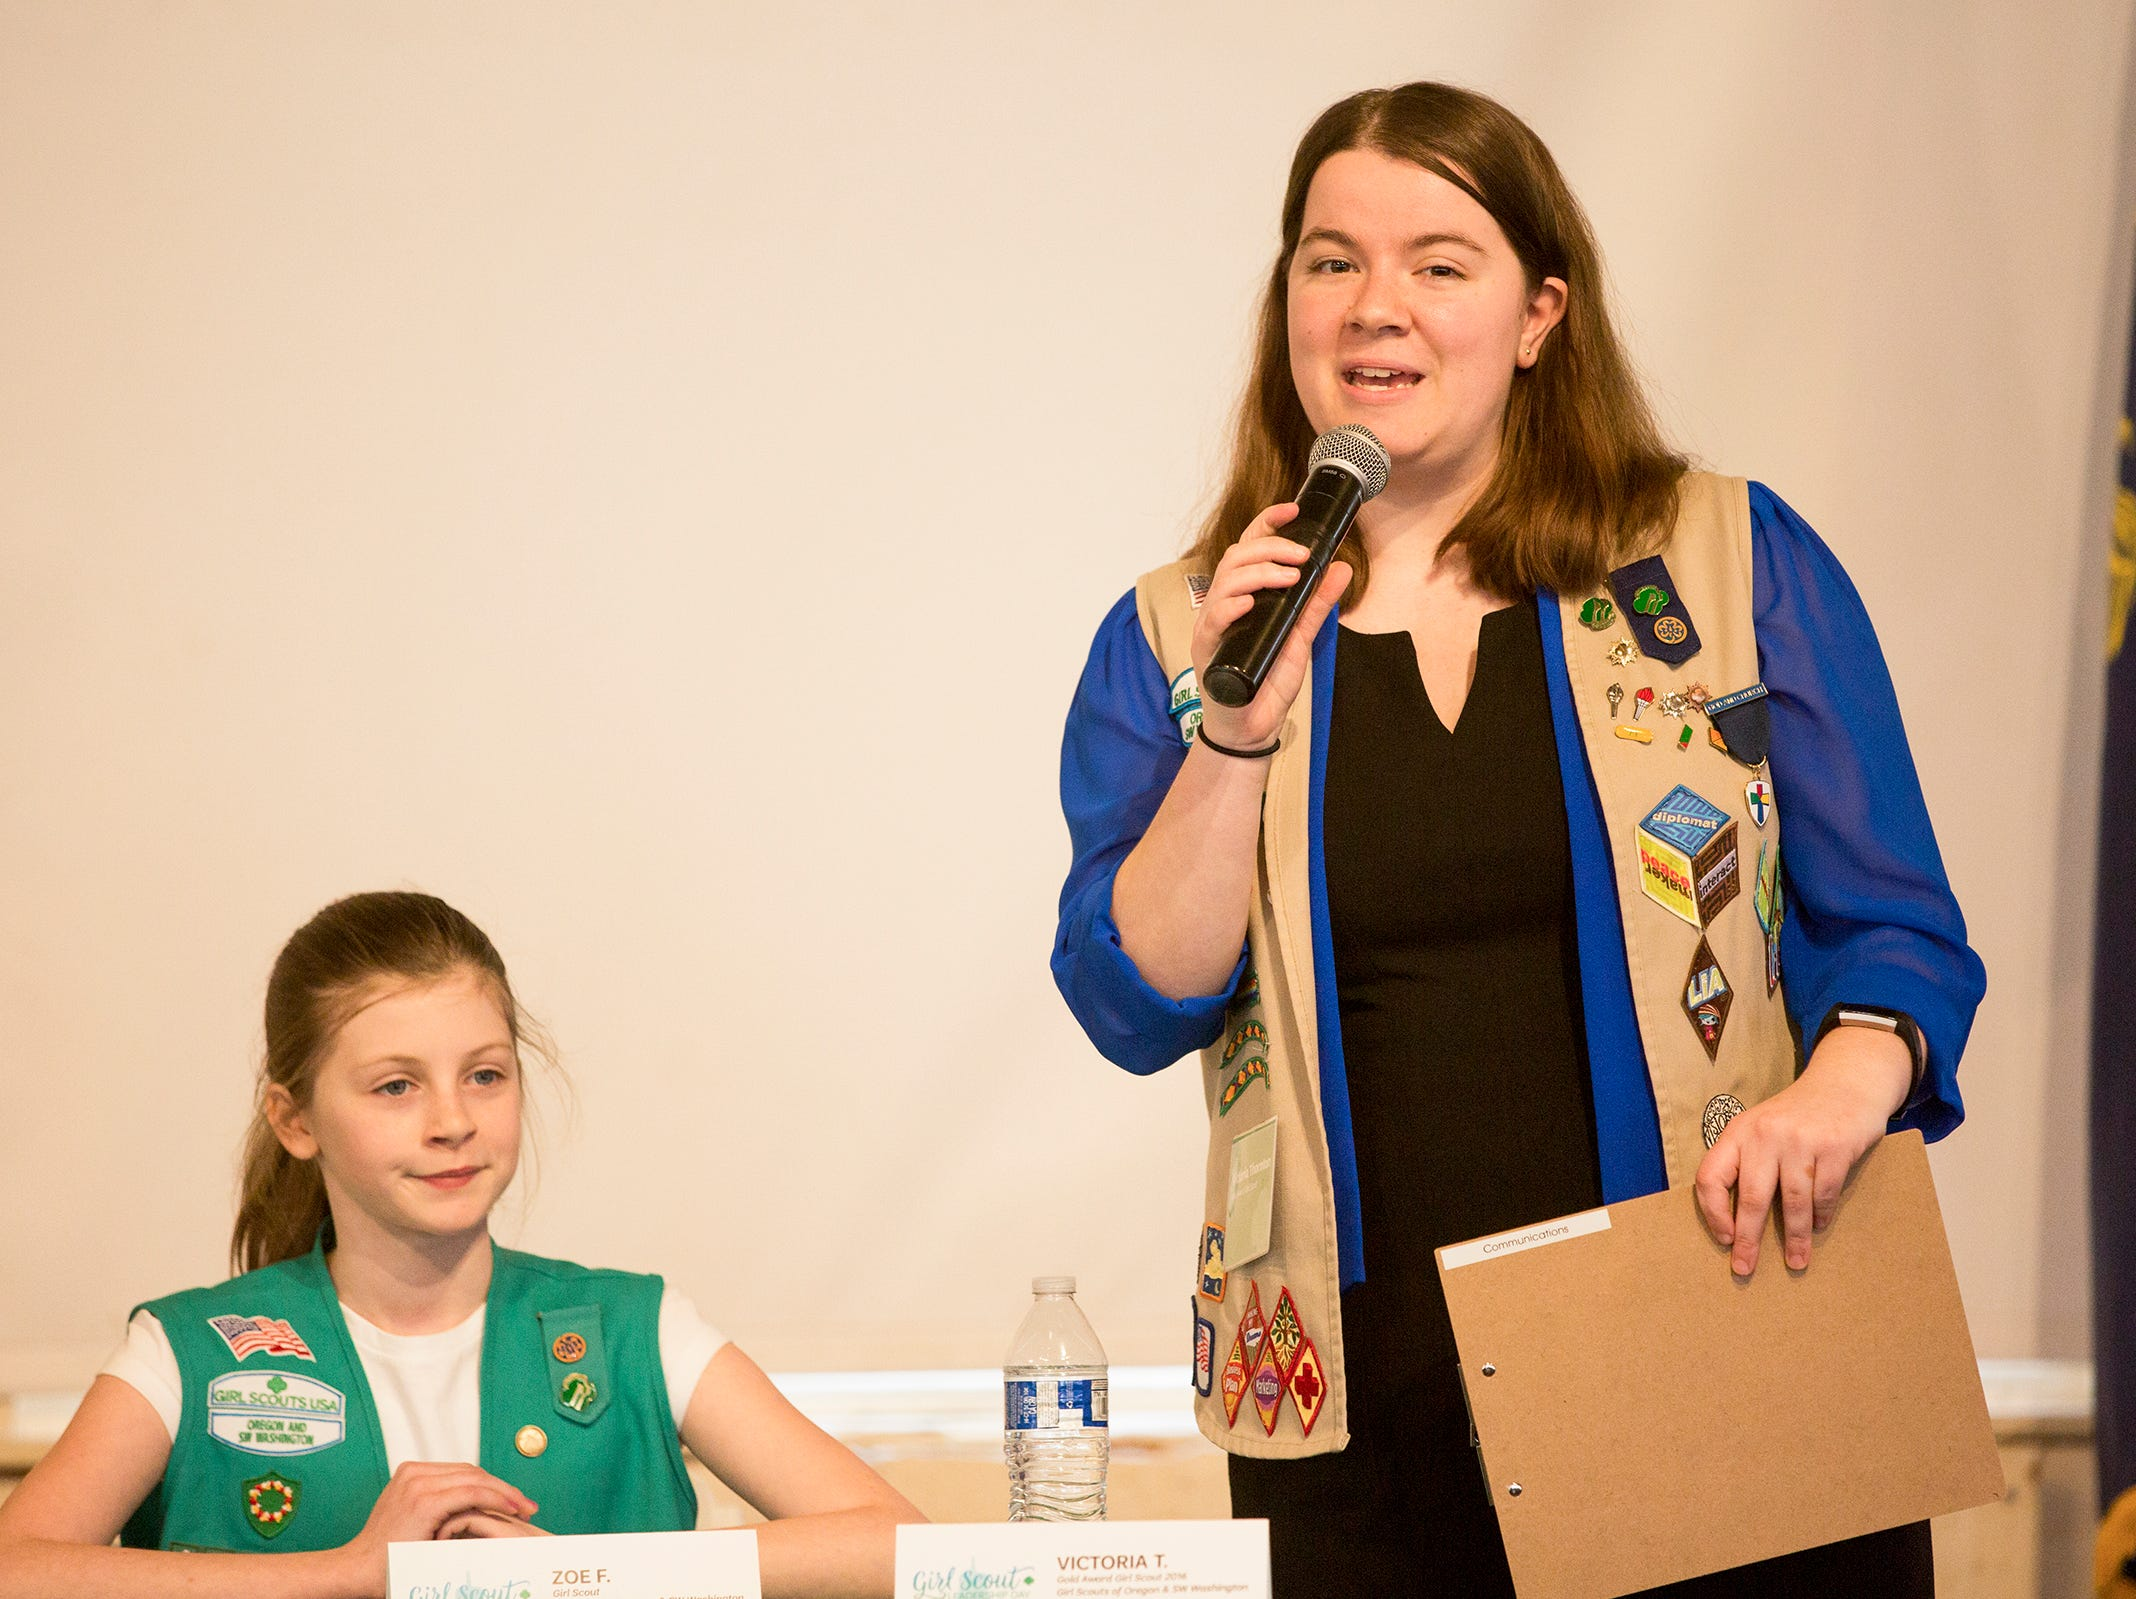 Victoria Thornton, of Vancouver, hosts a Girls Who Make a Difference panel during Girl Scout Leadership Day at the Oregon State Capitol in Salem March 12, 2019.